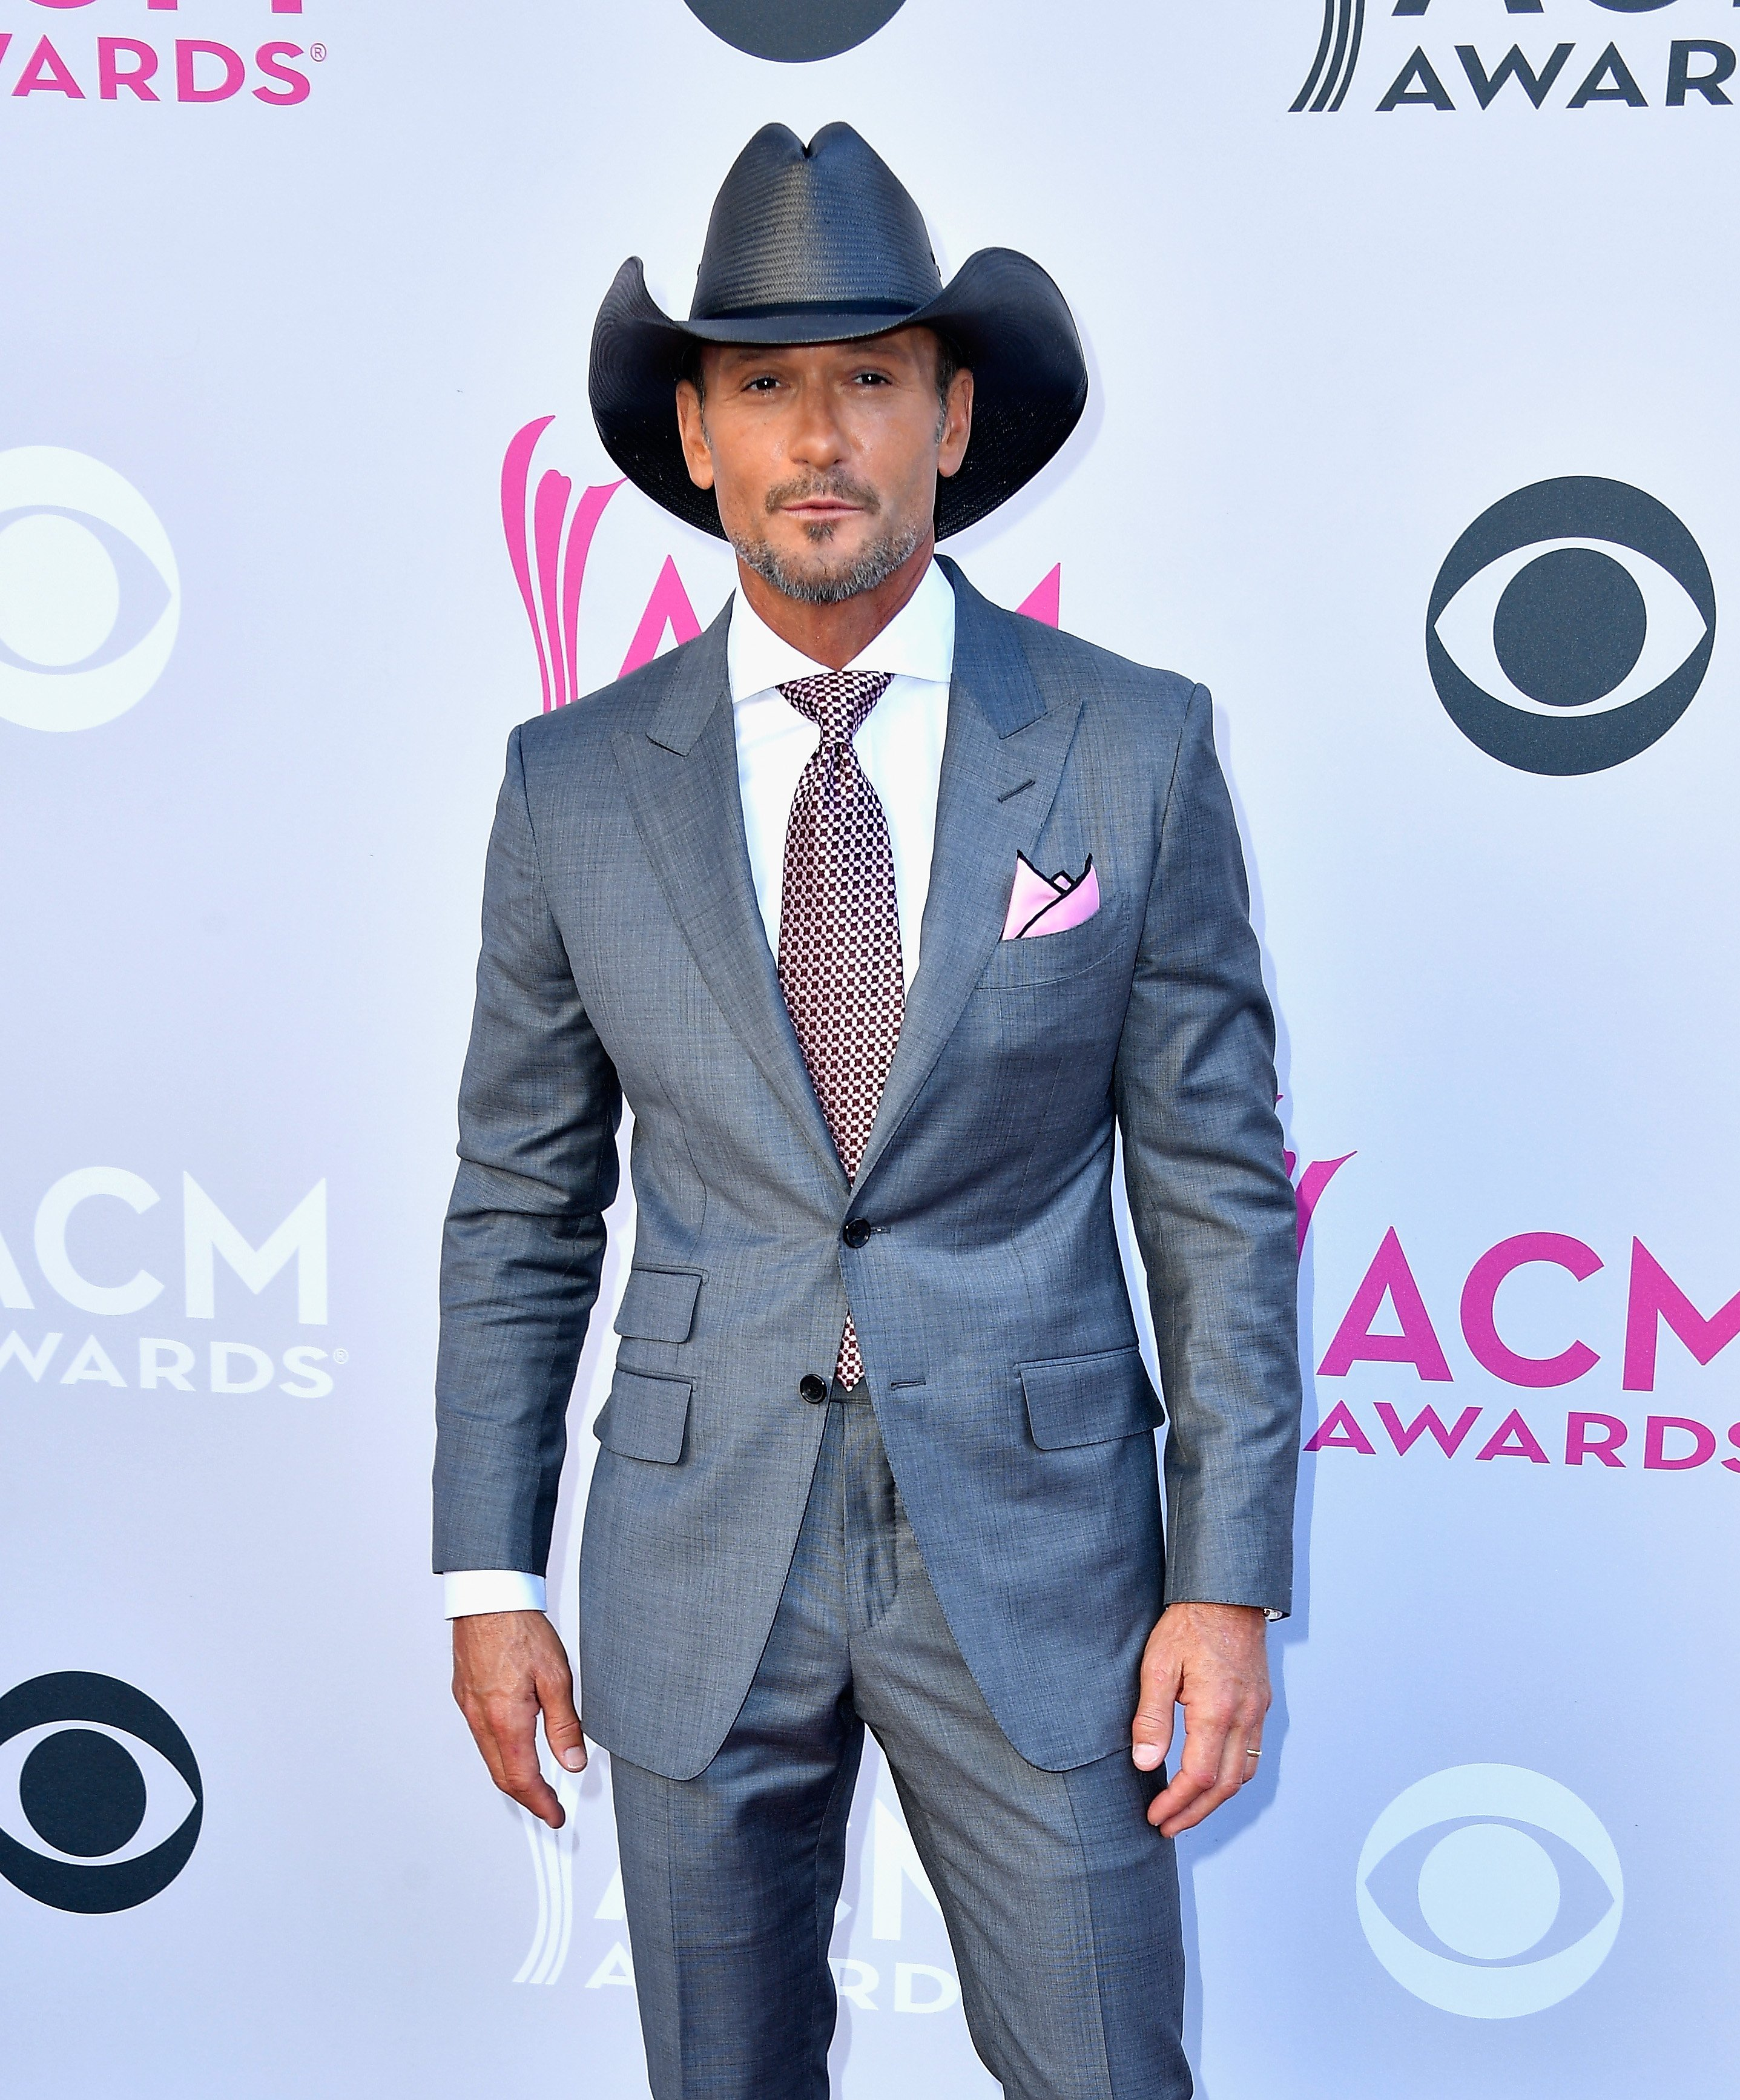 Tim McGraw attends the 52nd Academy Of Country Music Awards in 2017. | Source: Getty Images